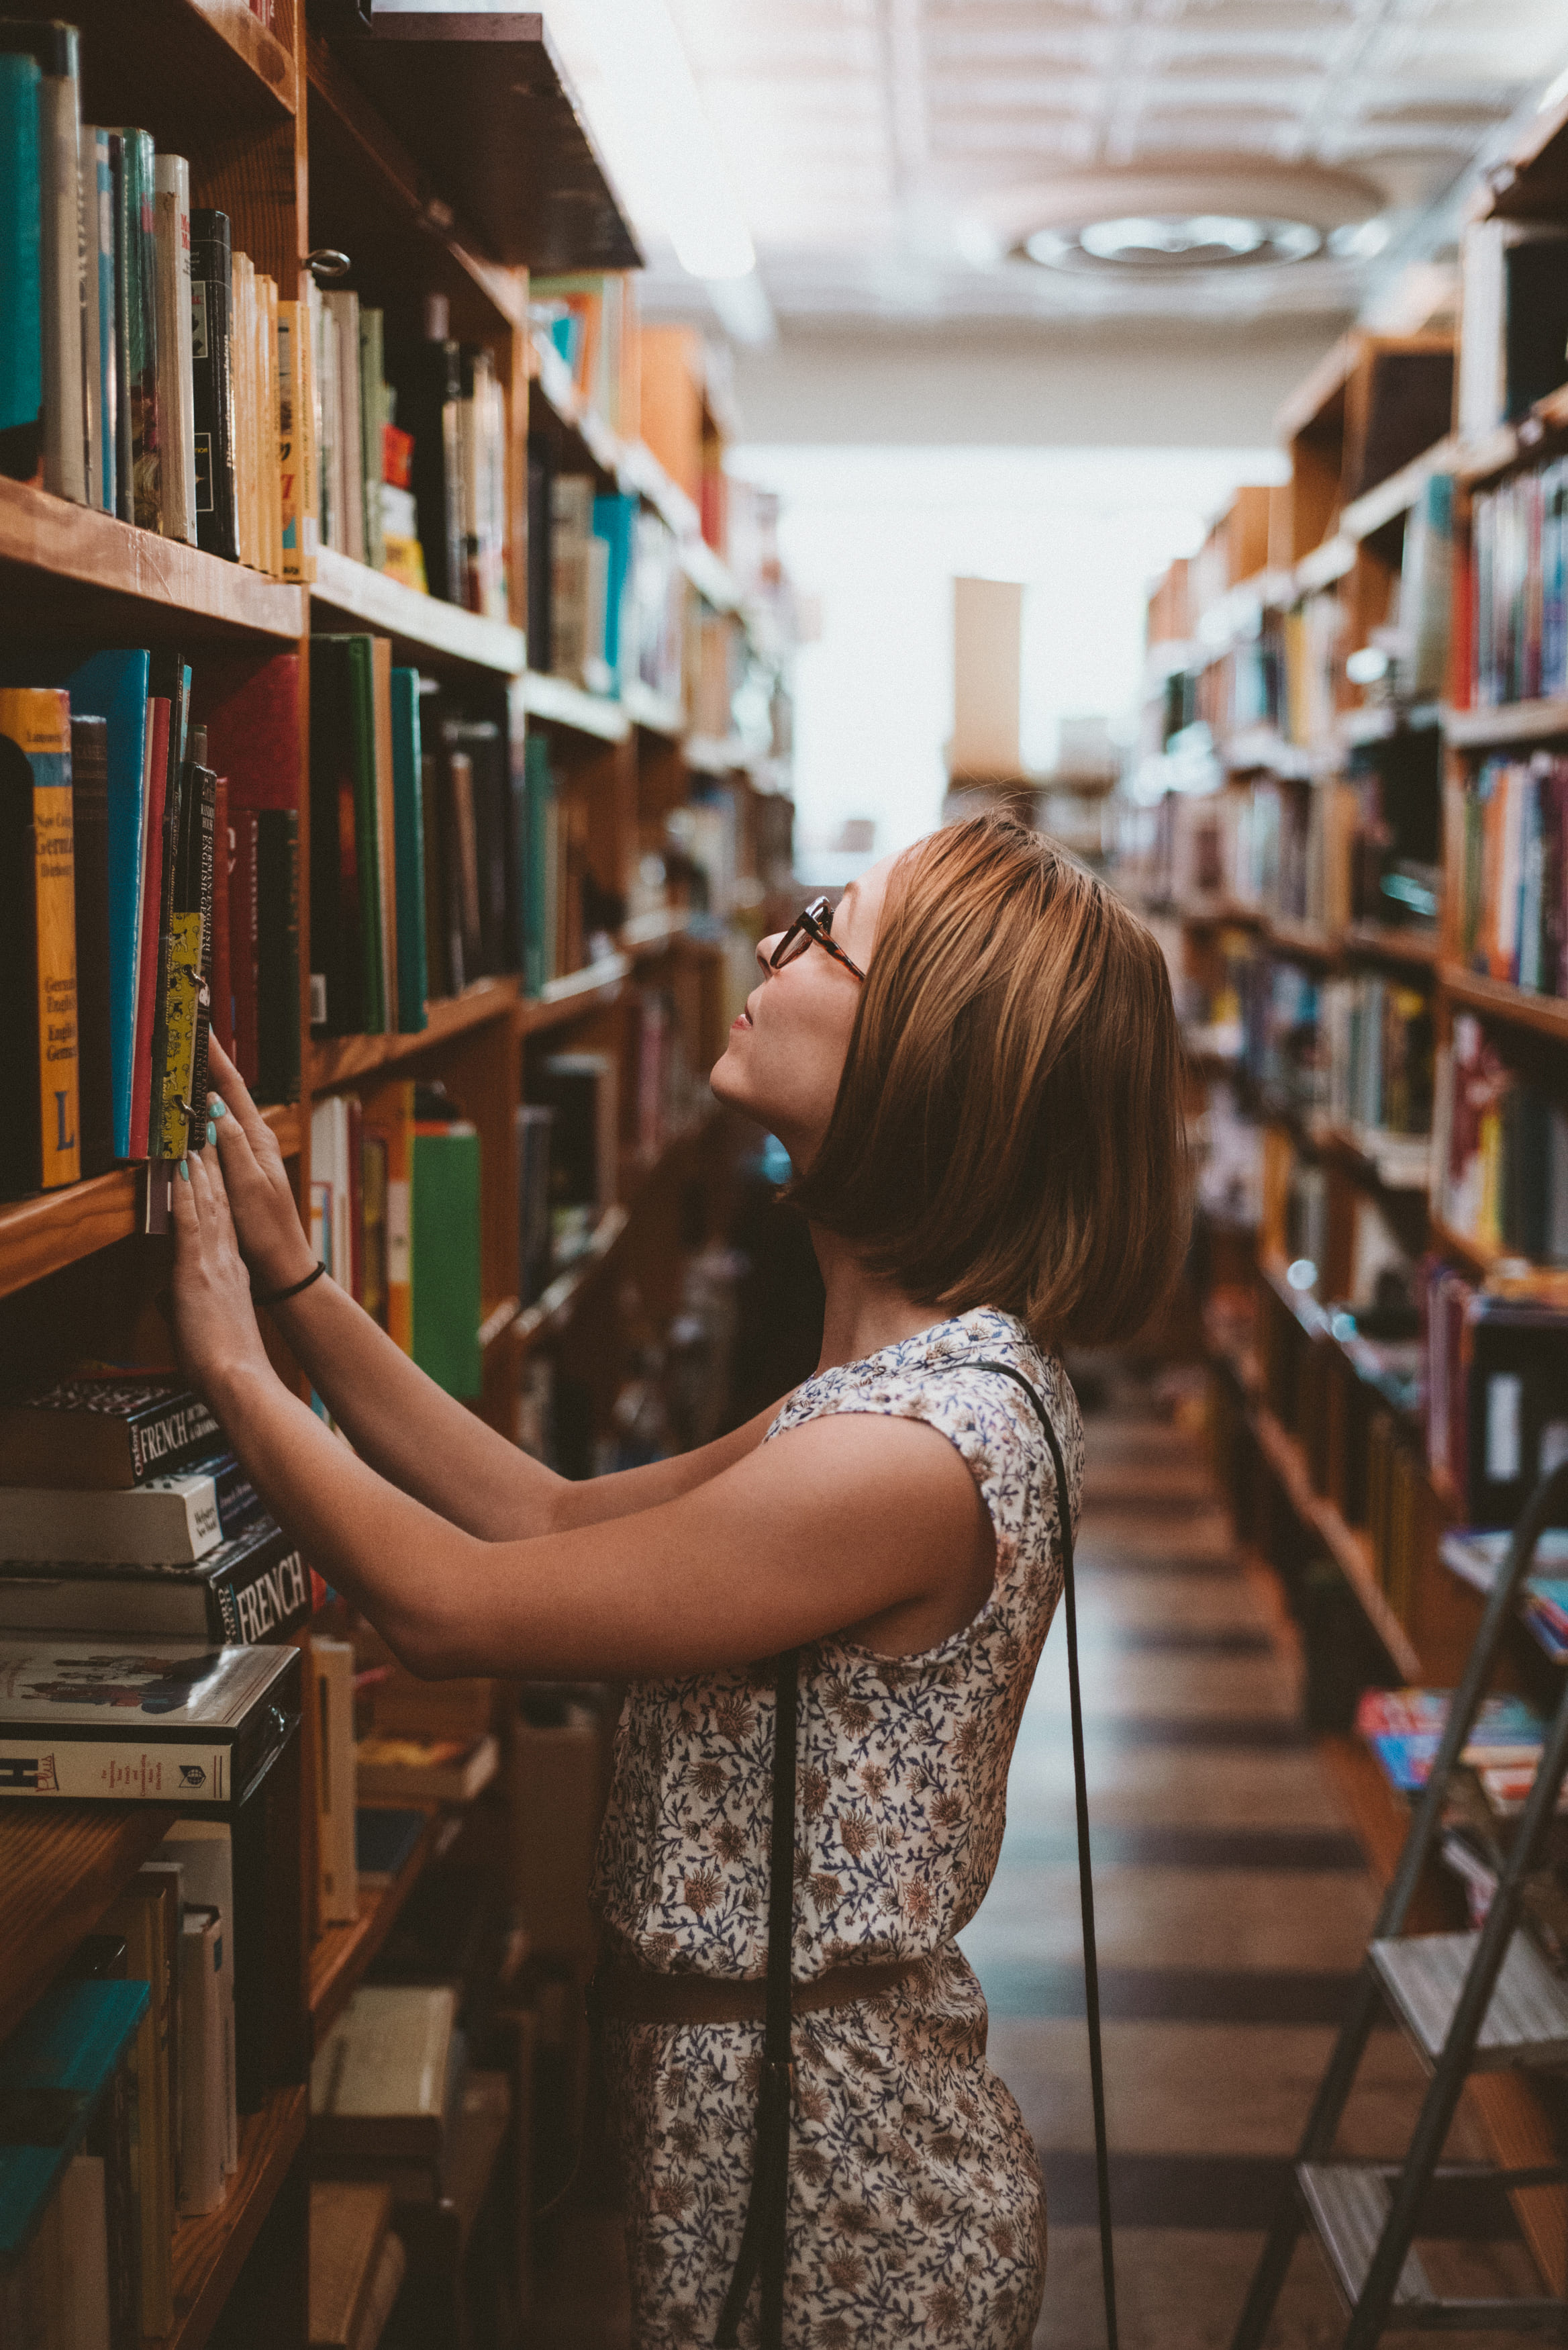 Woman in library searching for book